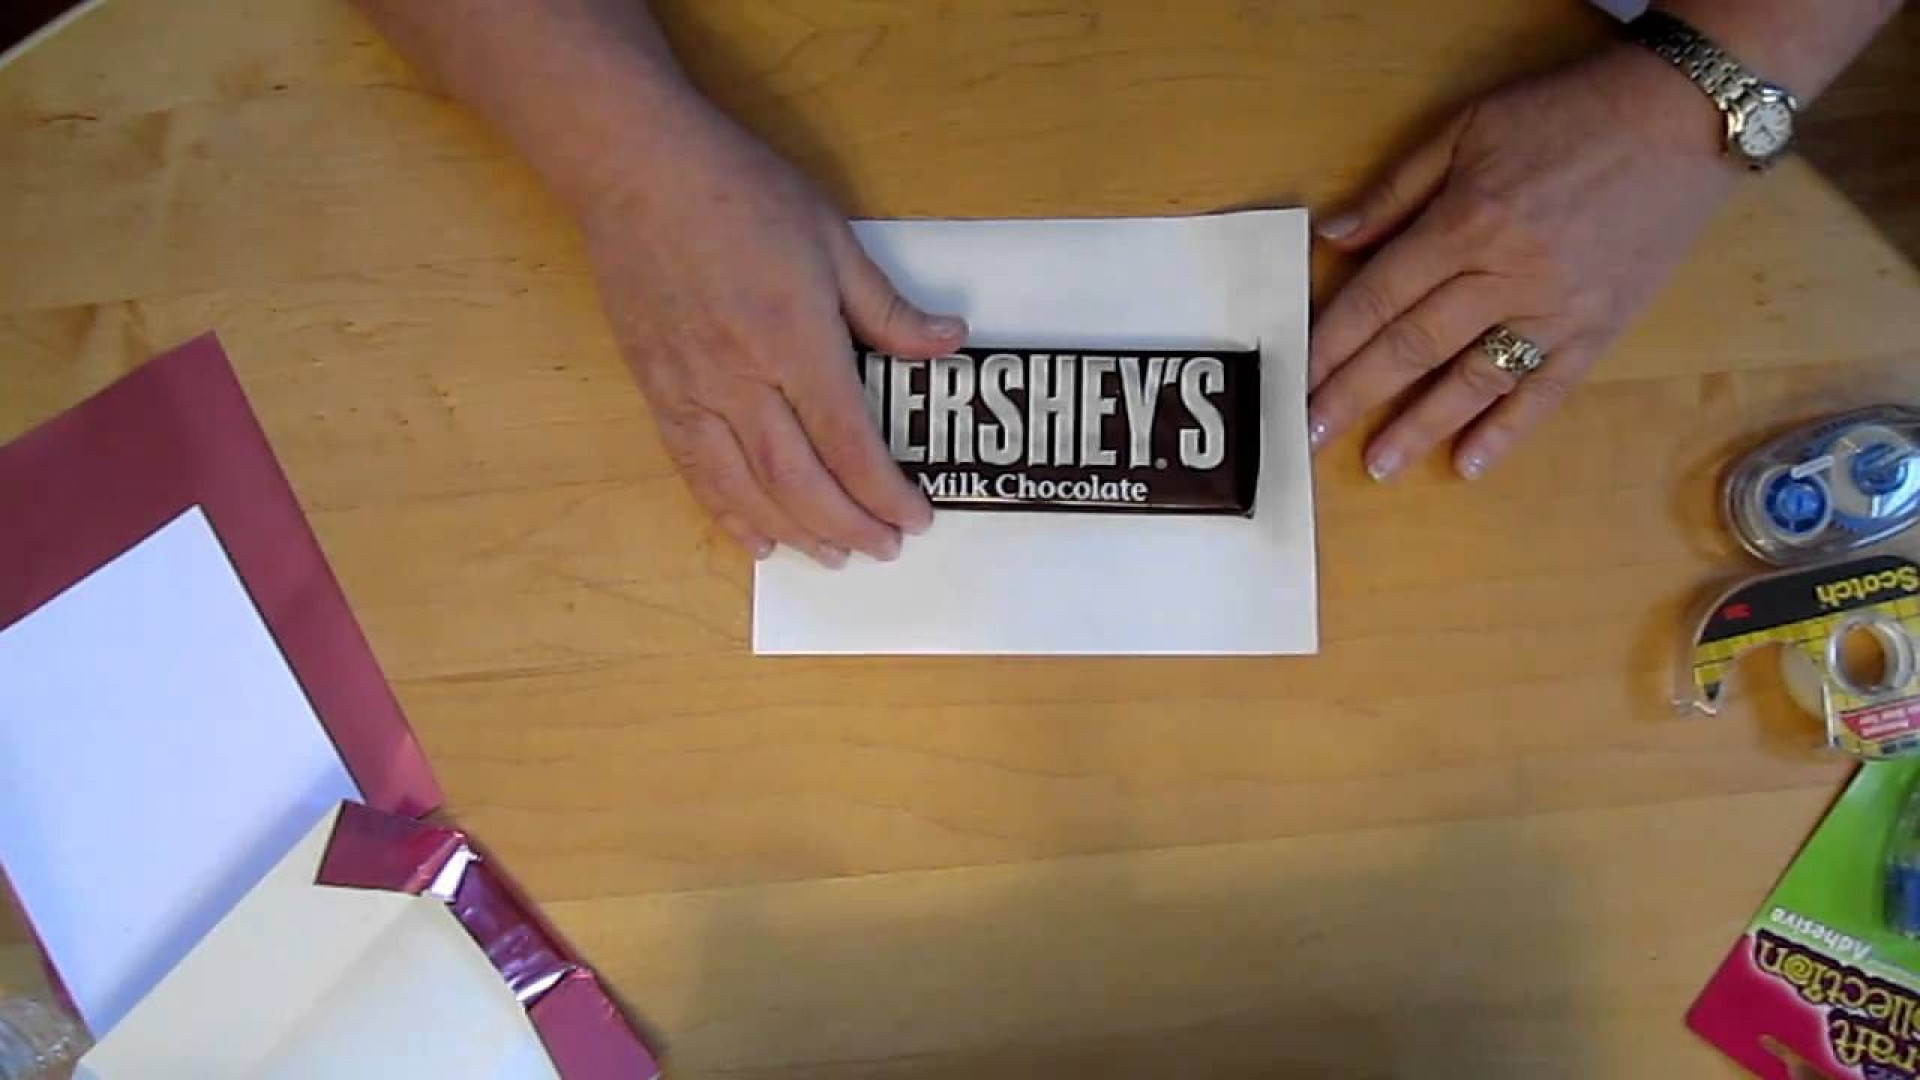 002 Staggering Candy Bar Wrapper Template Measurement Image  Dimension1920